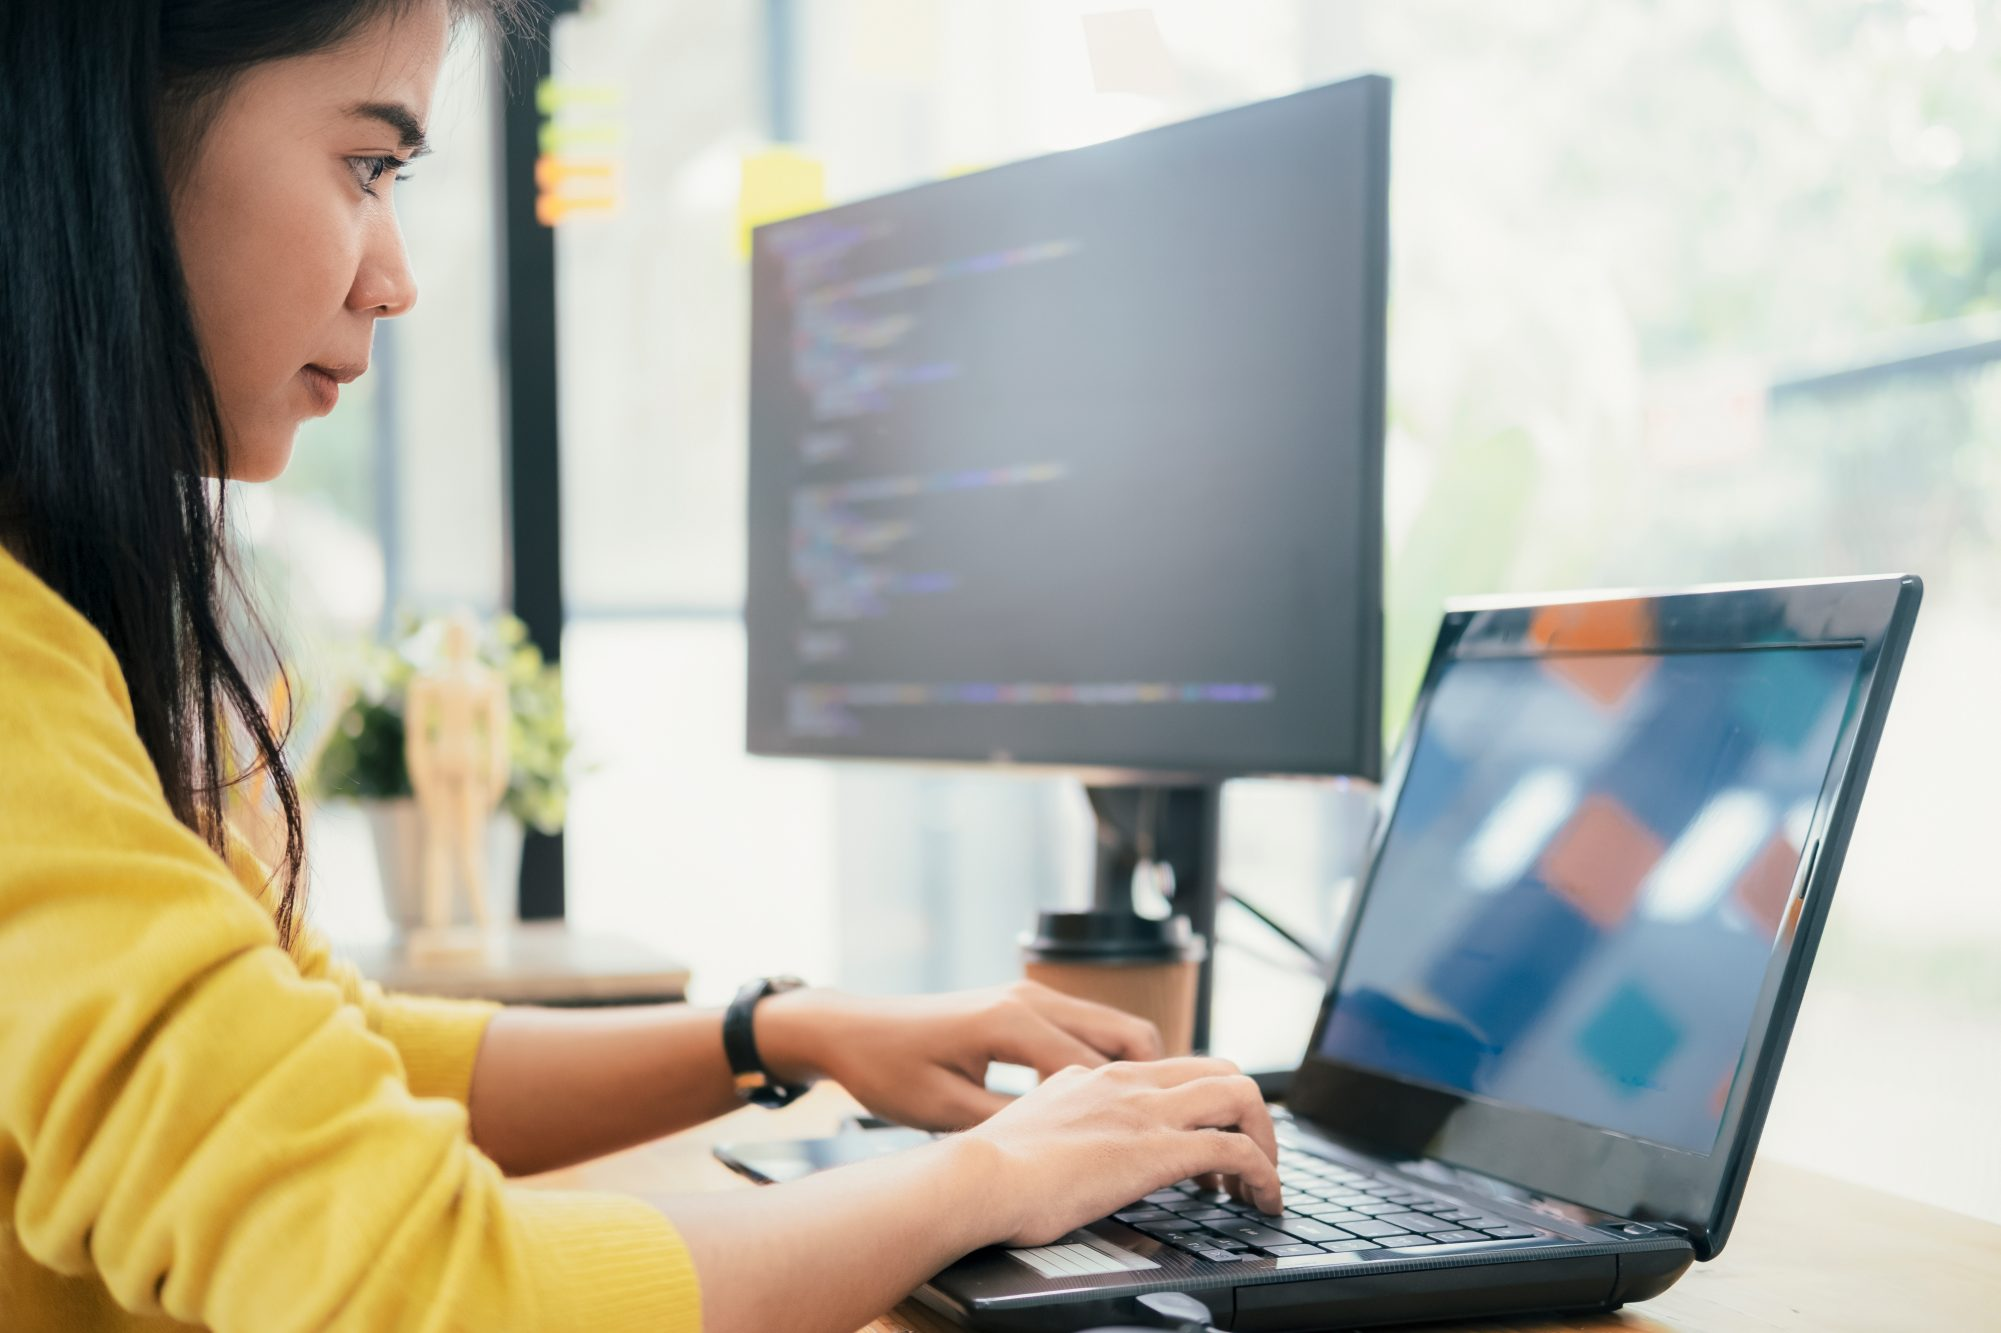 Programmers and developer teams are coding and developing software.